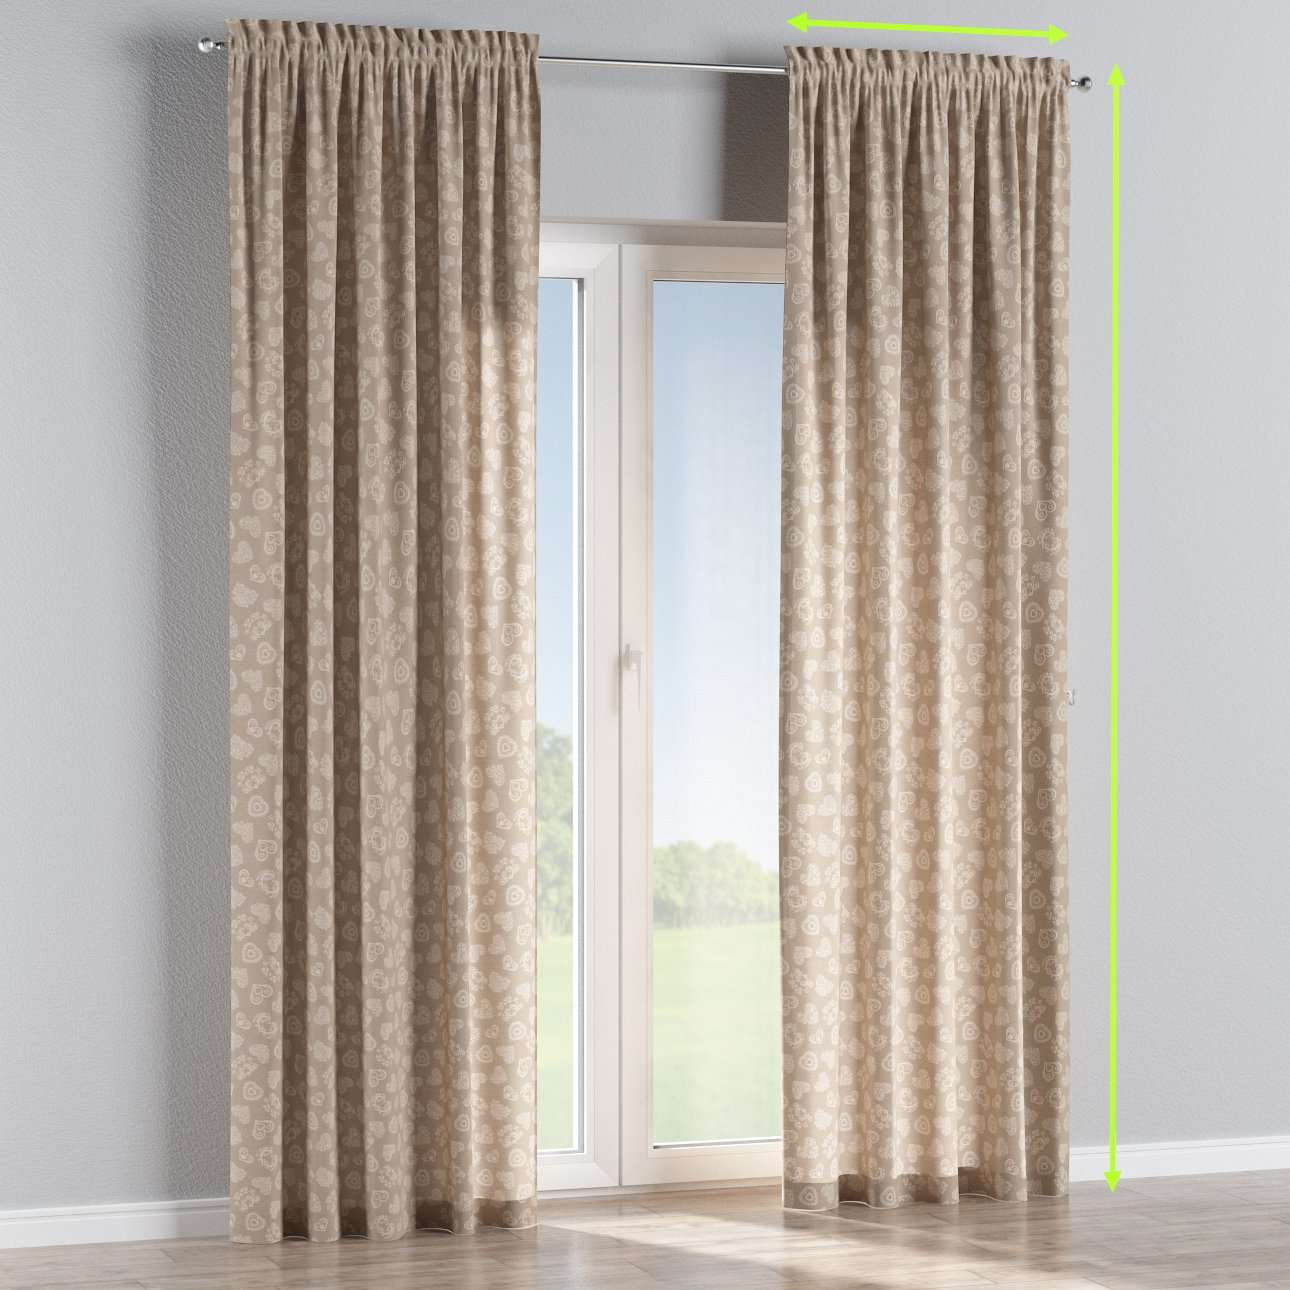 Slot and frill lined curtains in collection Flowers, fabric: 140-56